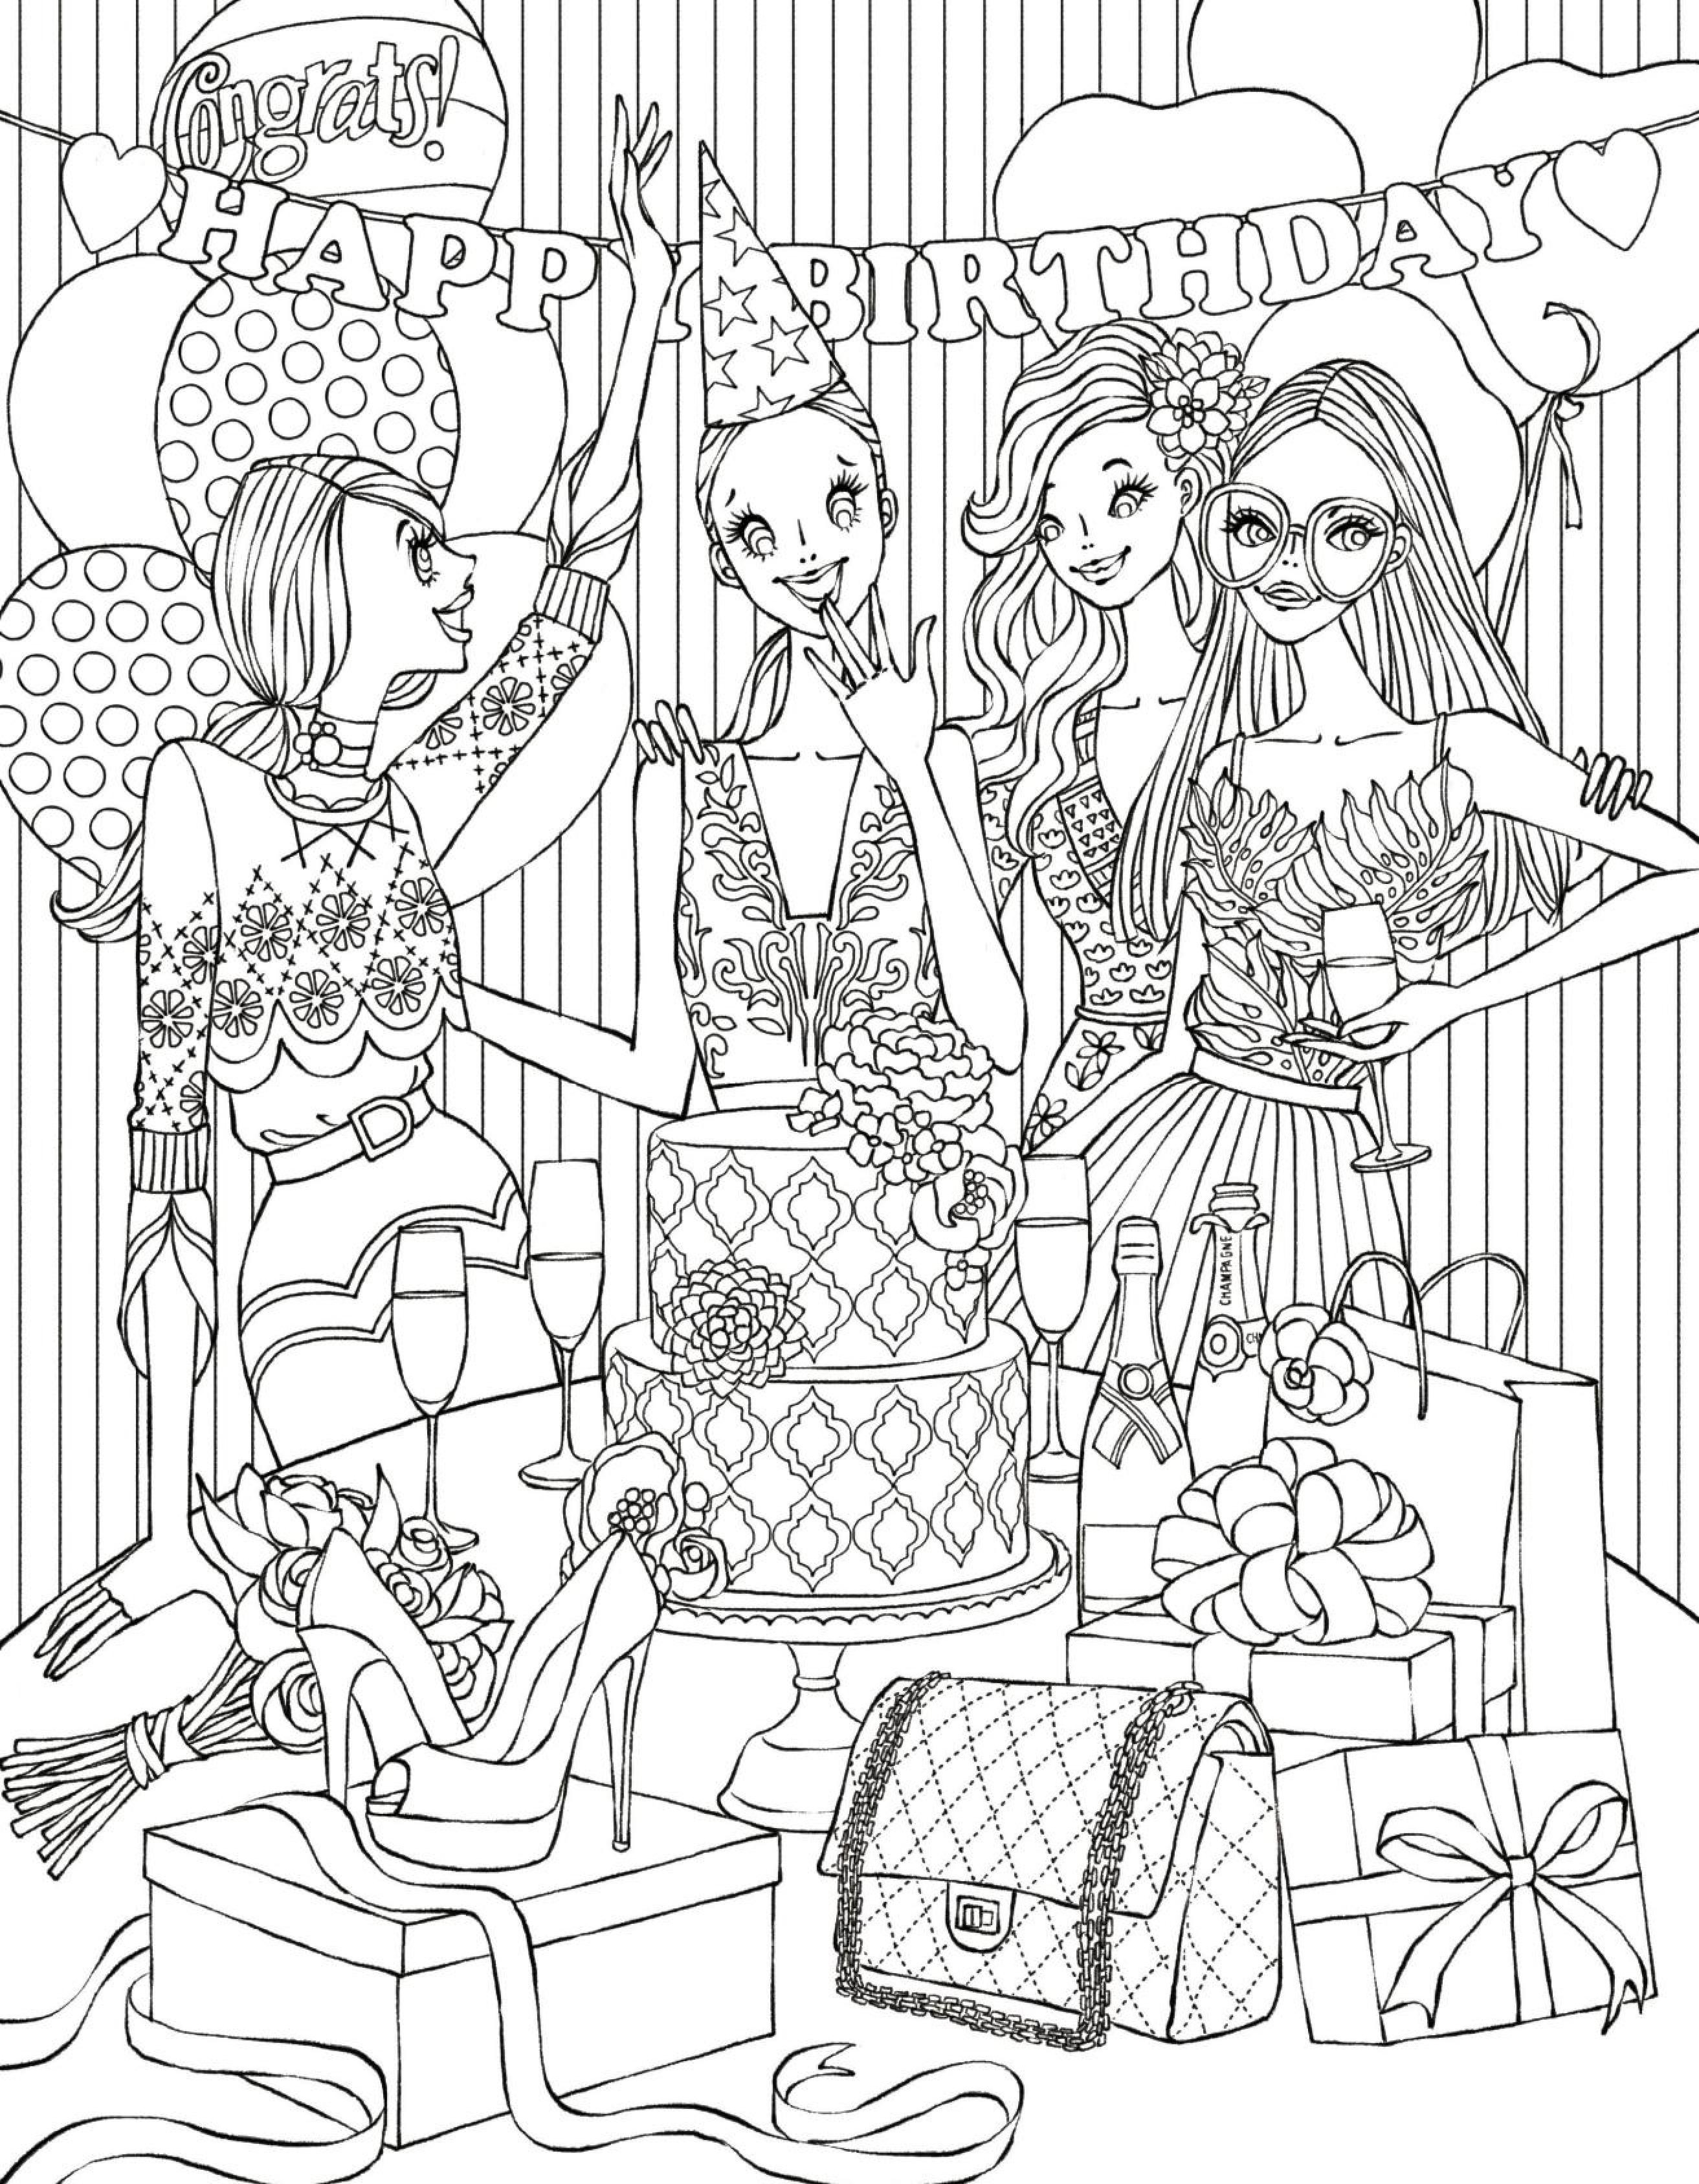 25 Jewish Holidays Coloring Pages Gallery - Coloring Sheets